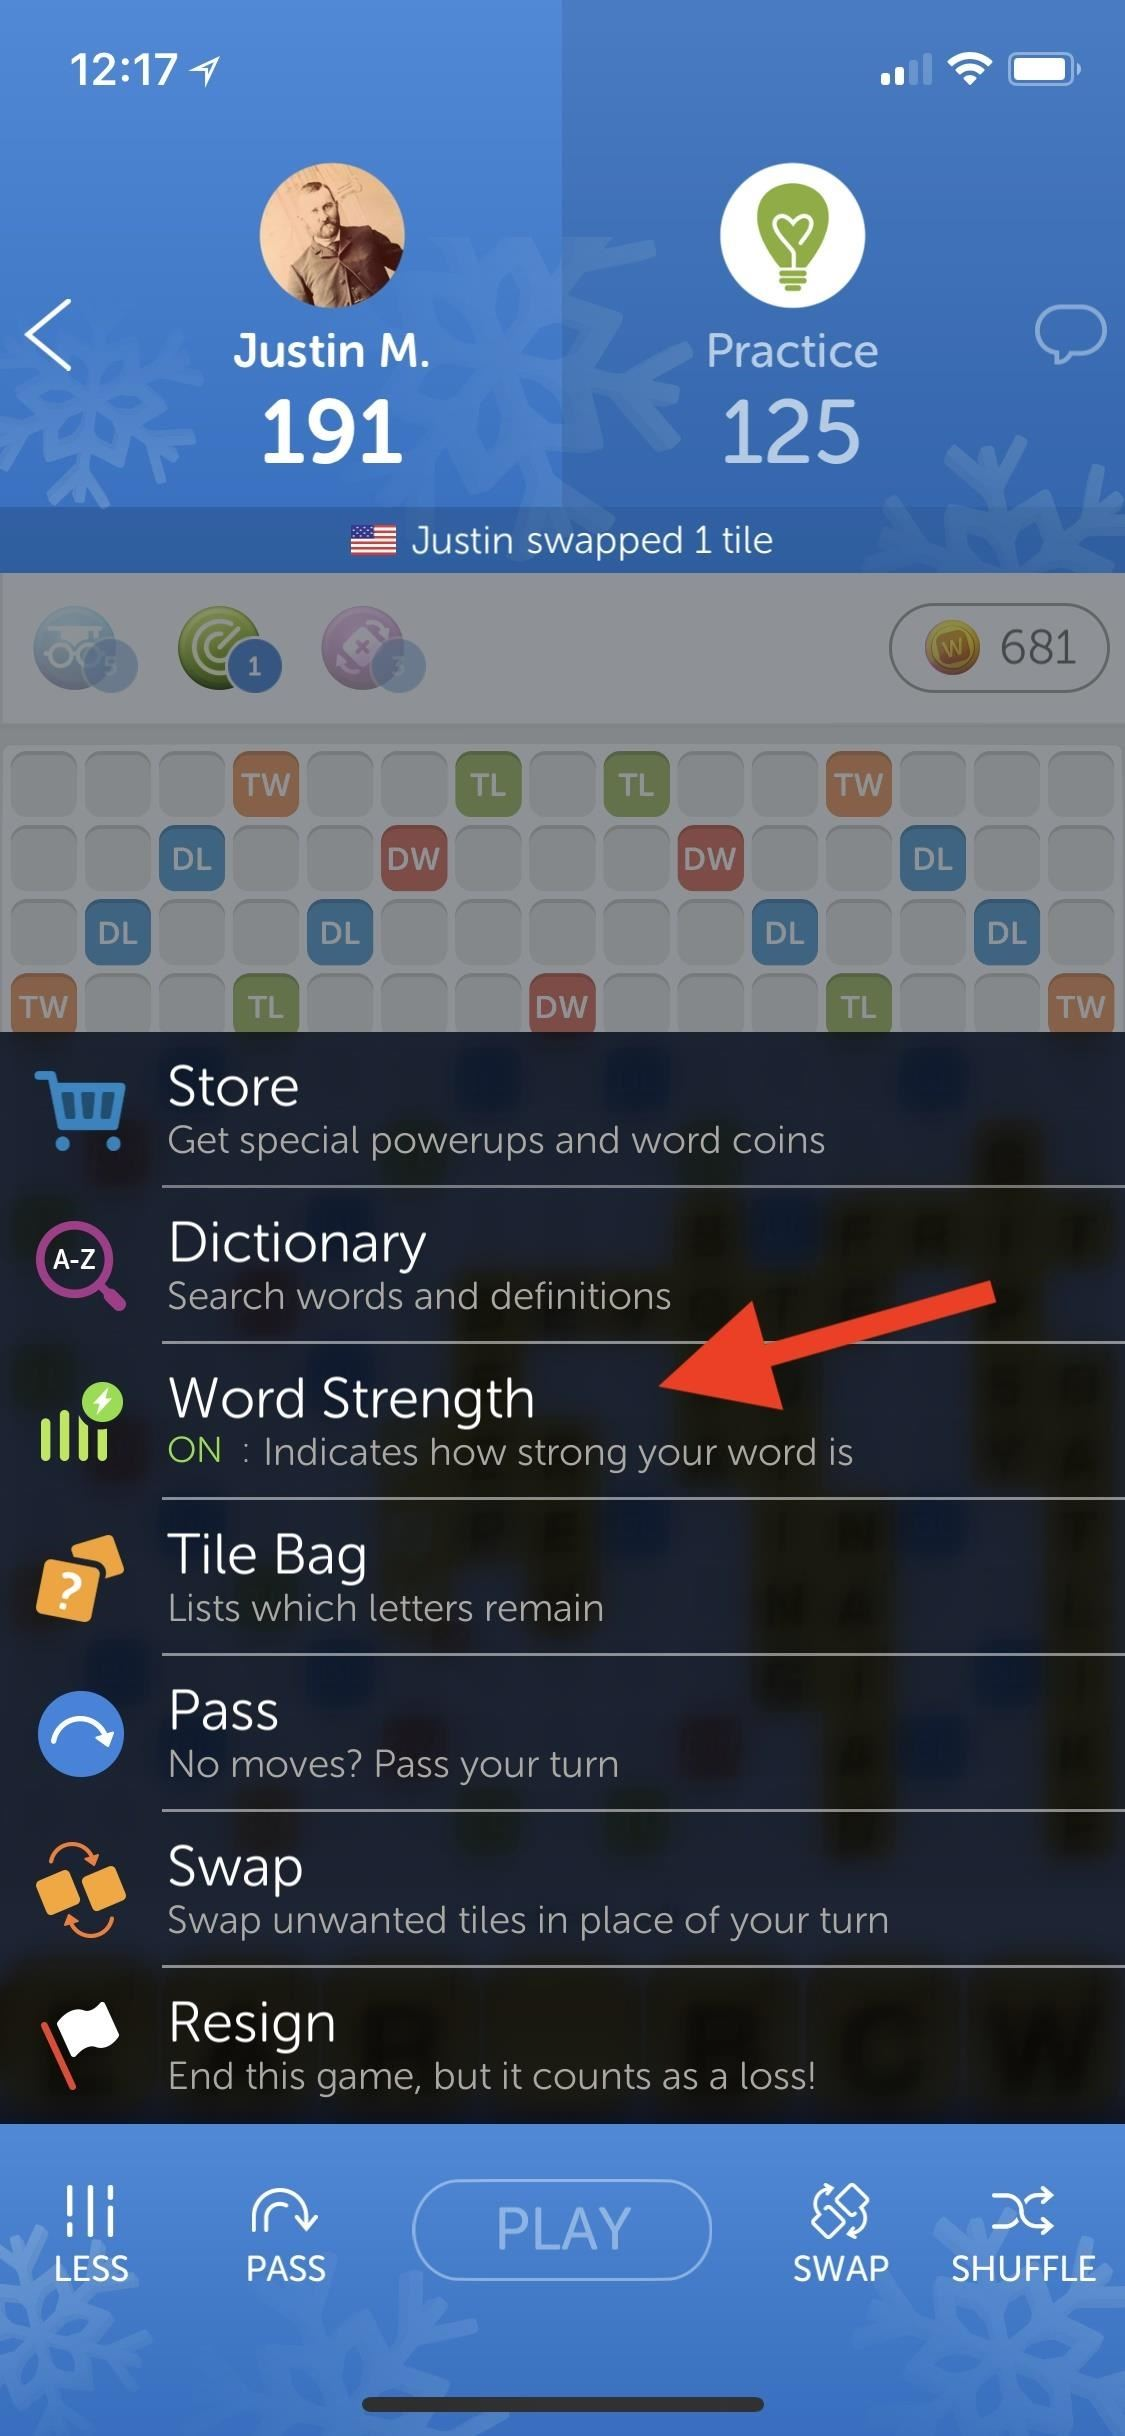 How to Use the Remaining Tiles Bag to Score Big in Words with